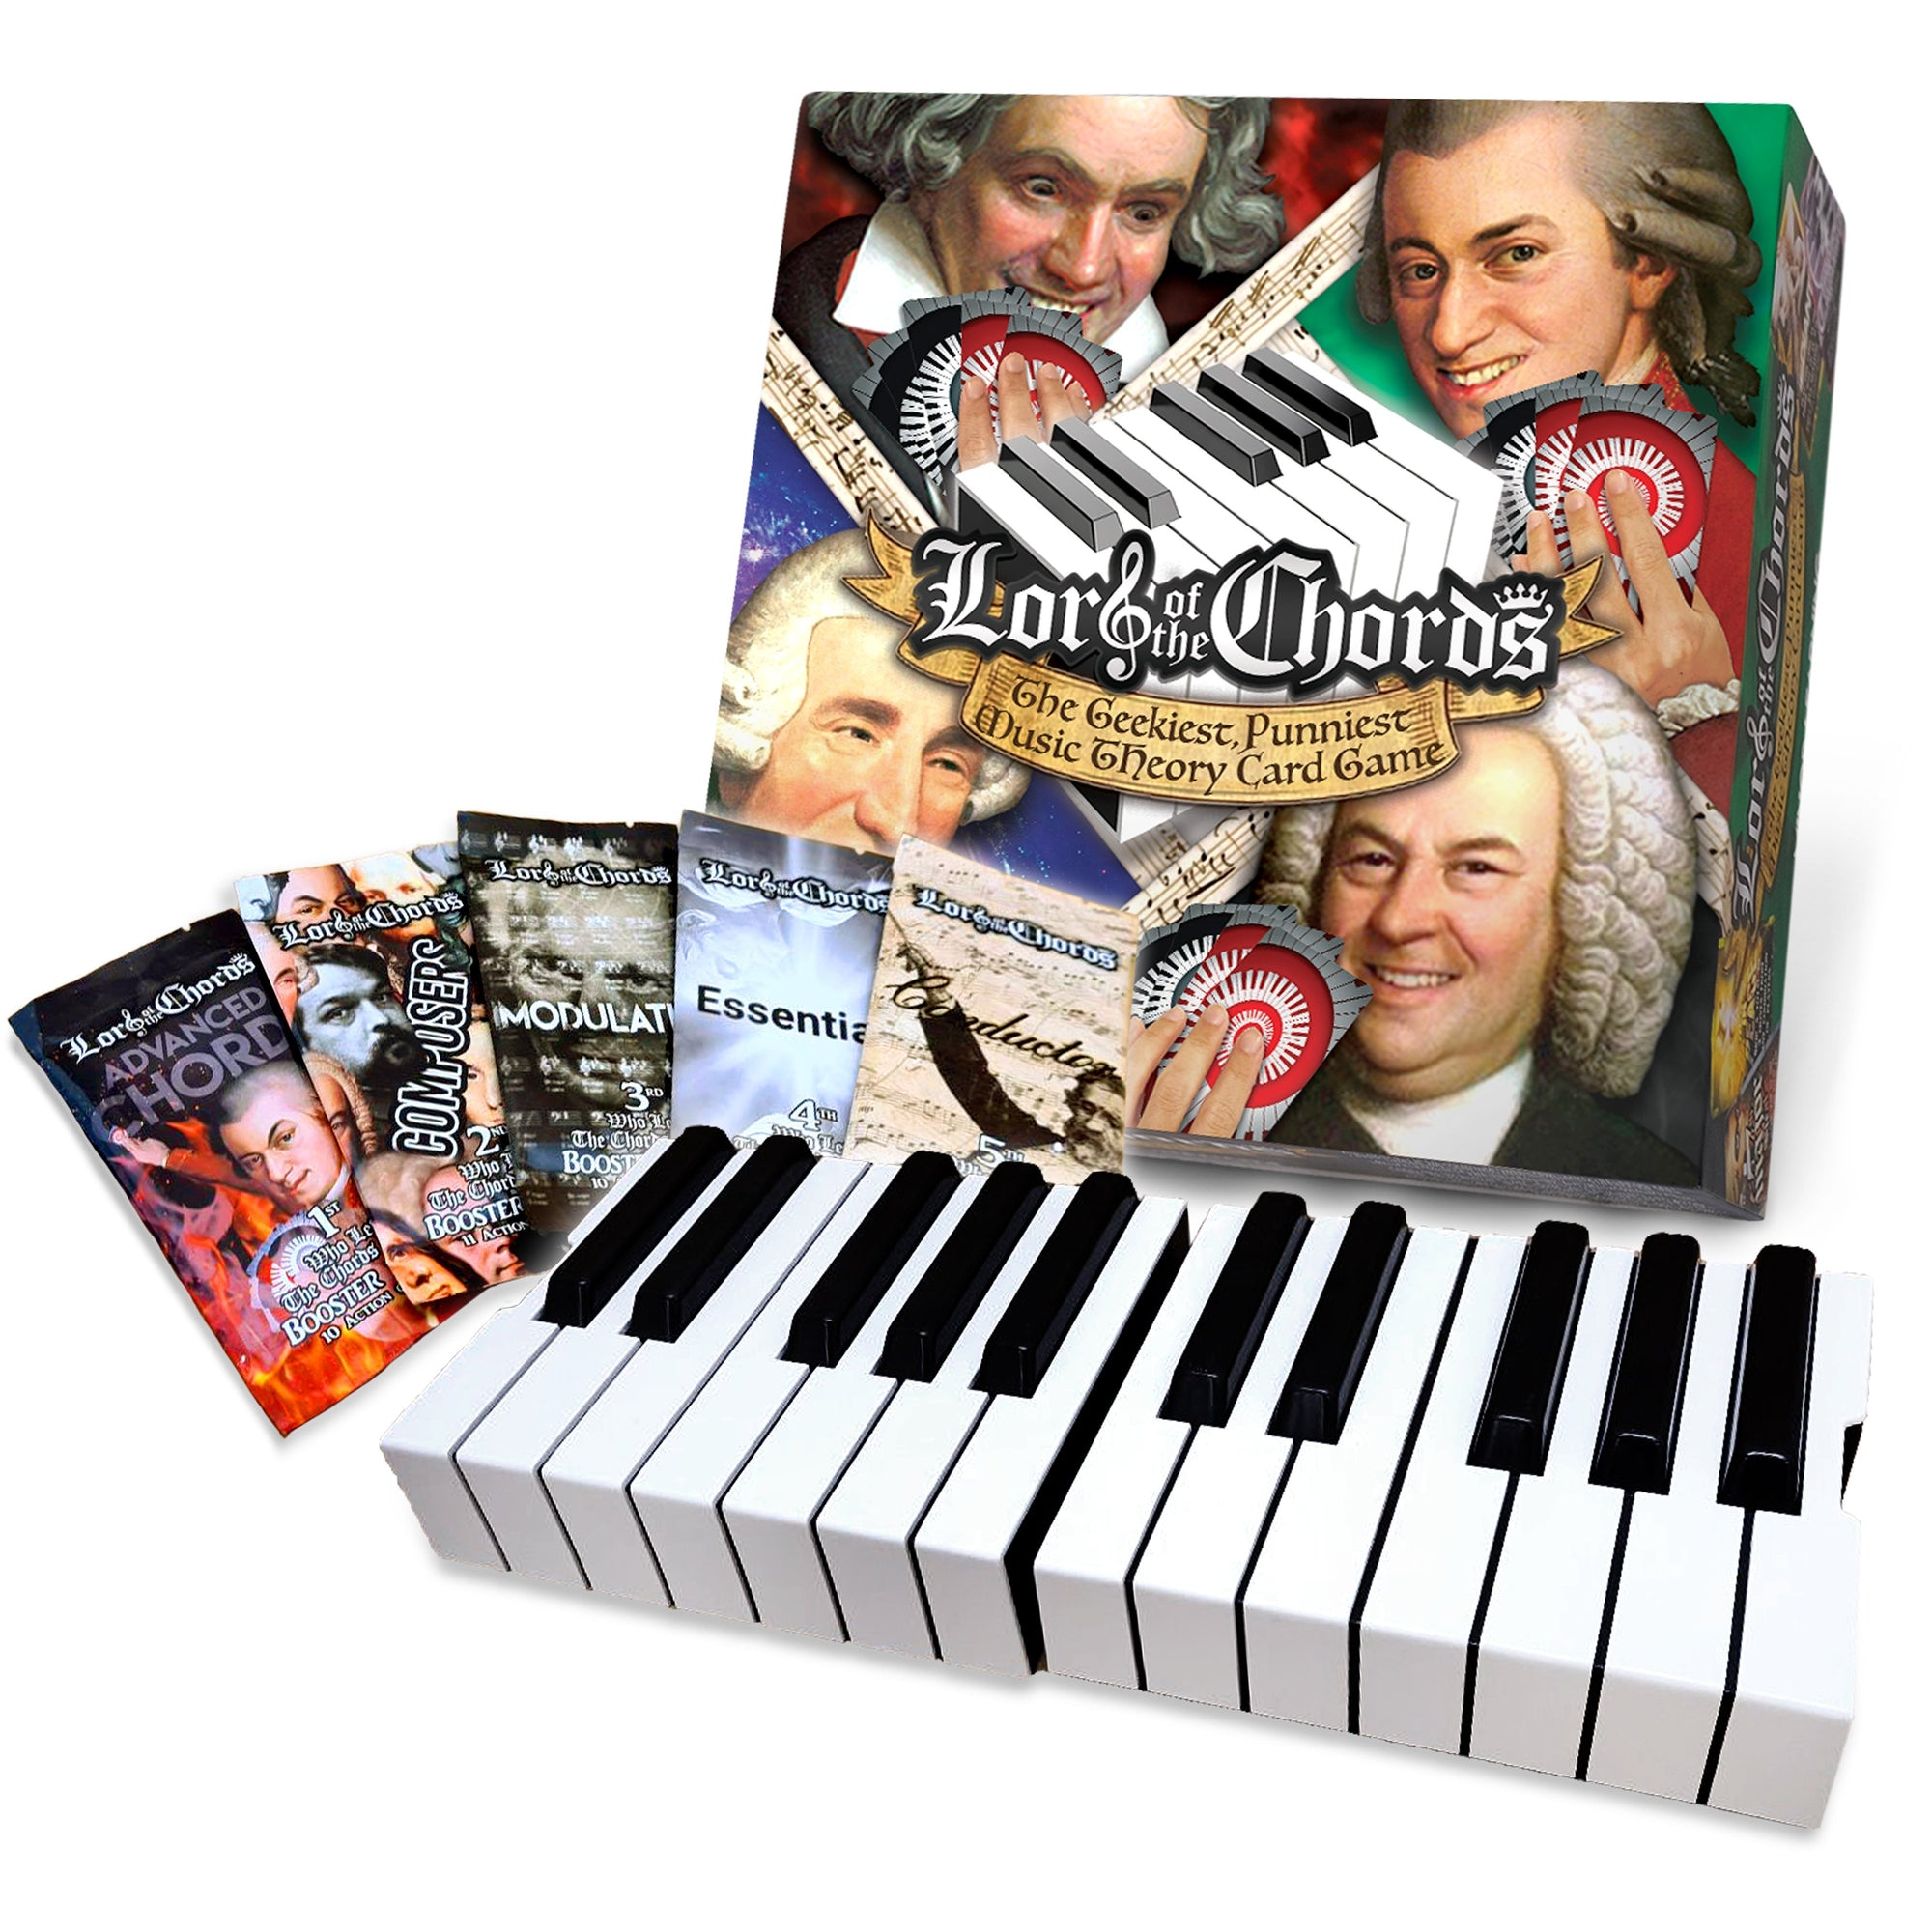 Major Bundle: Lord of the Chords + Expansion + Piano Box [15% OFF] - Lord of the Chords